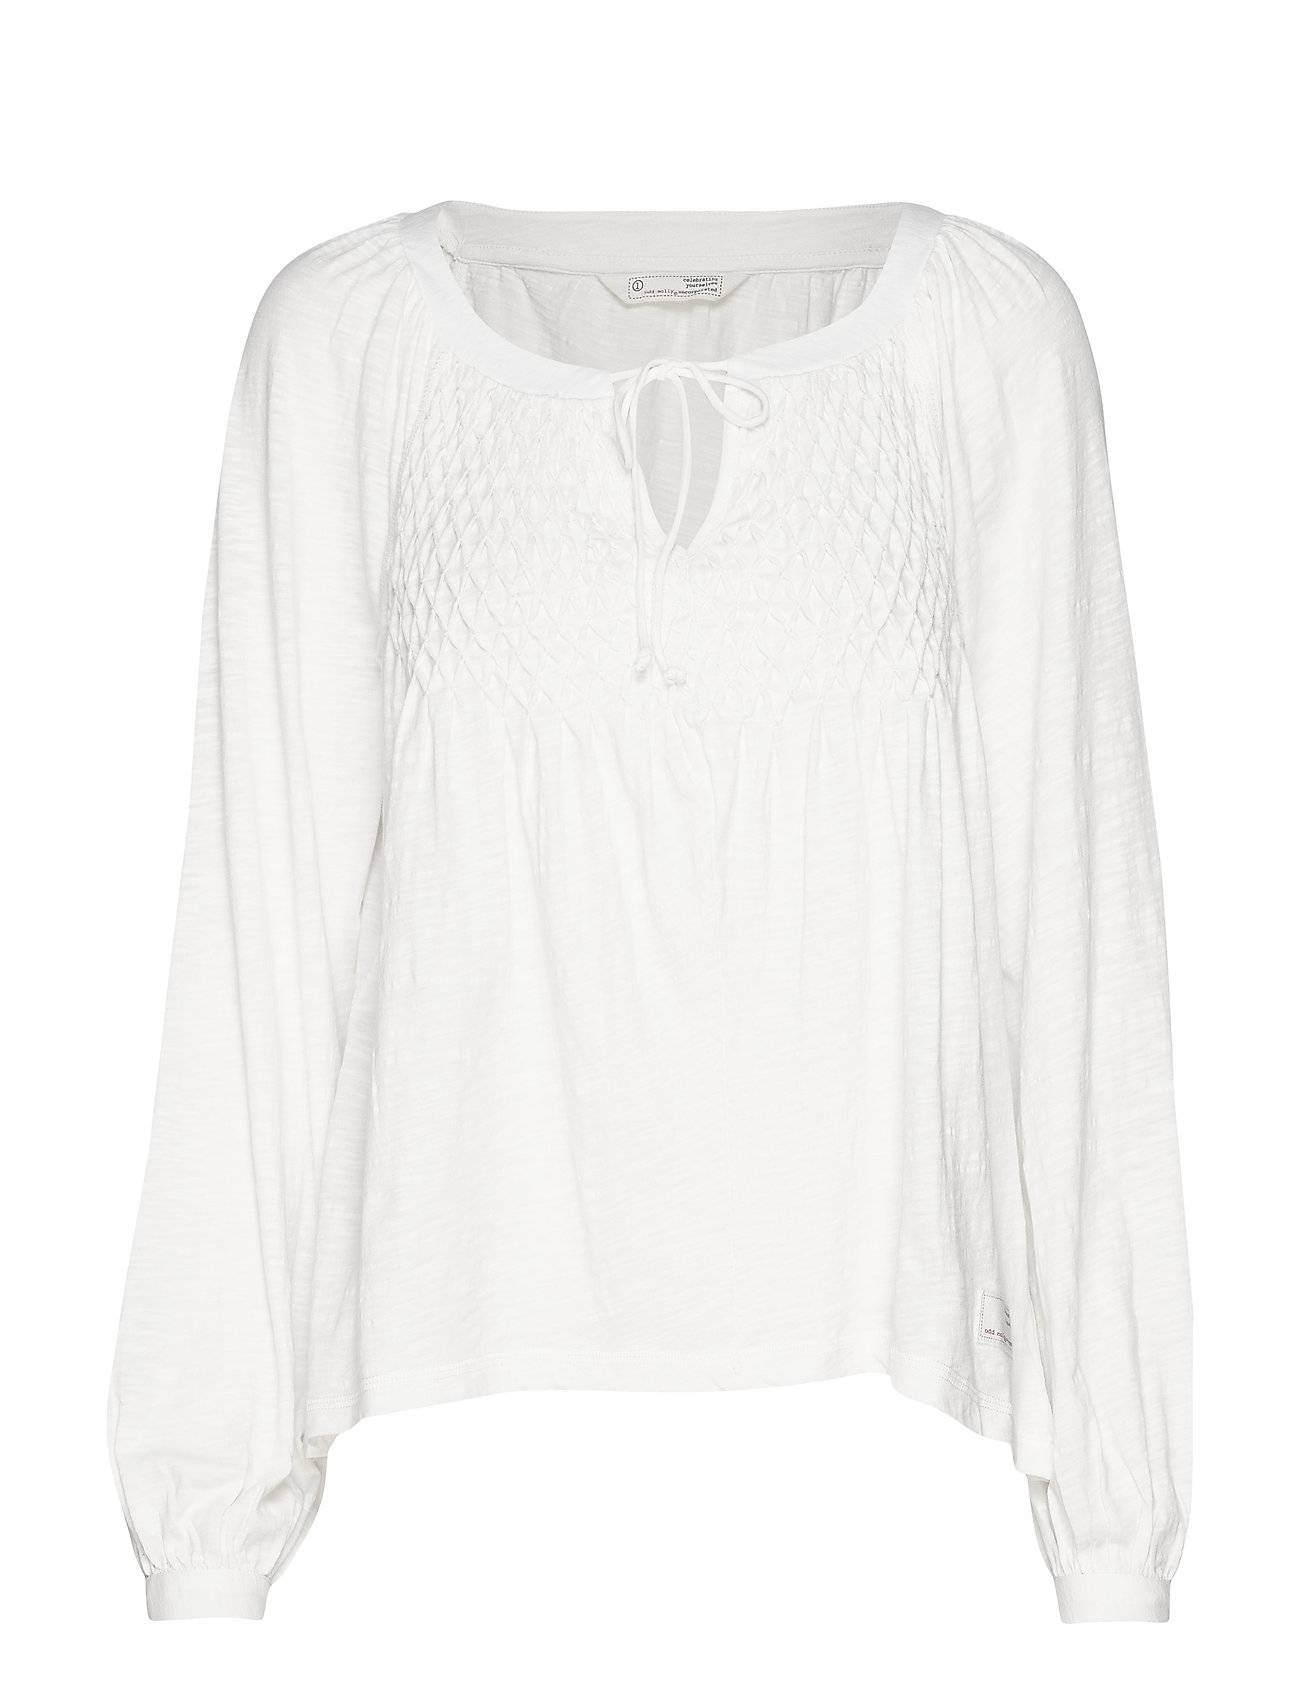 Image of ODD MOLLY I Call It Life Blouse T-shirts & Tops Long-sleeved Valkoinen ODD MOLLY